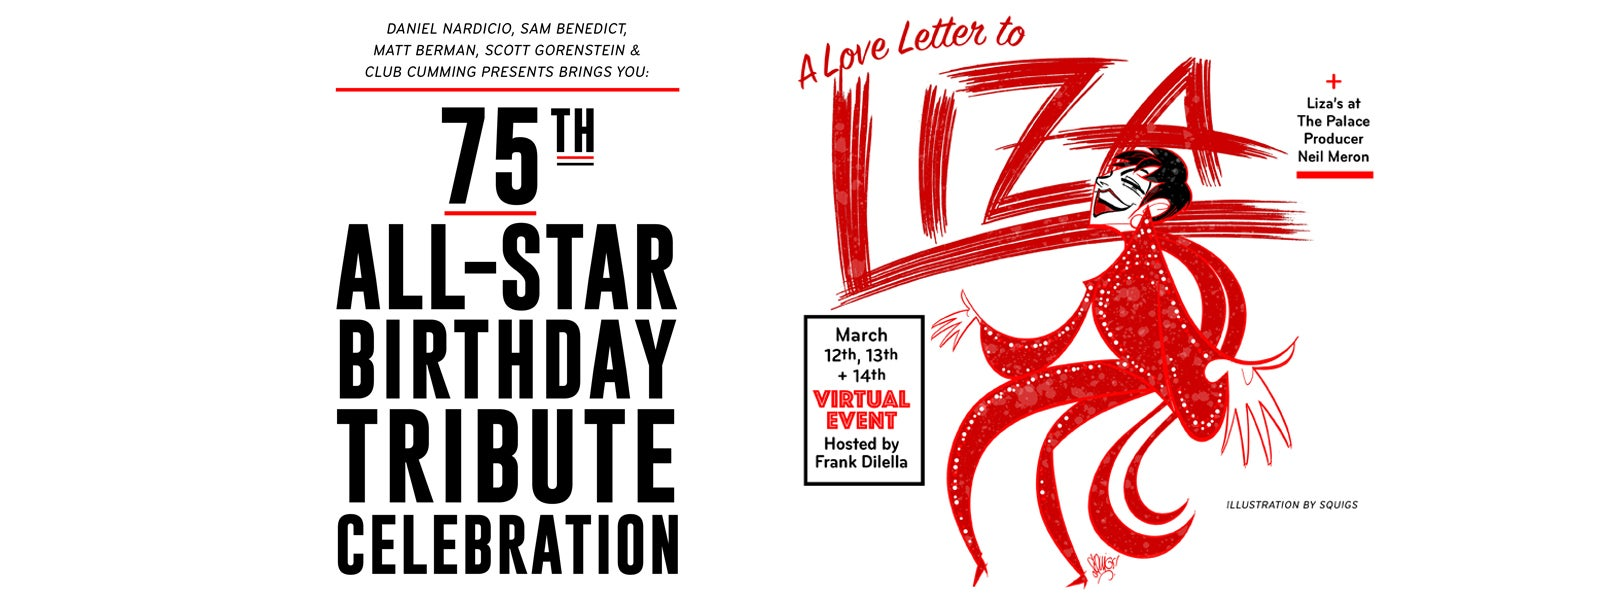 More Info - A Love Letter to Liza: A 75th Birthday Tribute Celebration